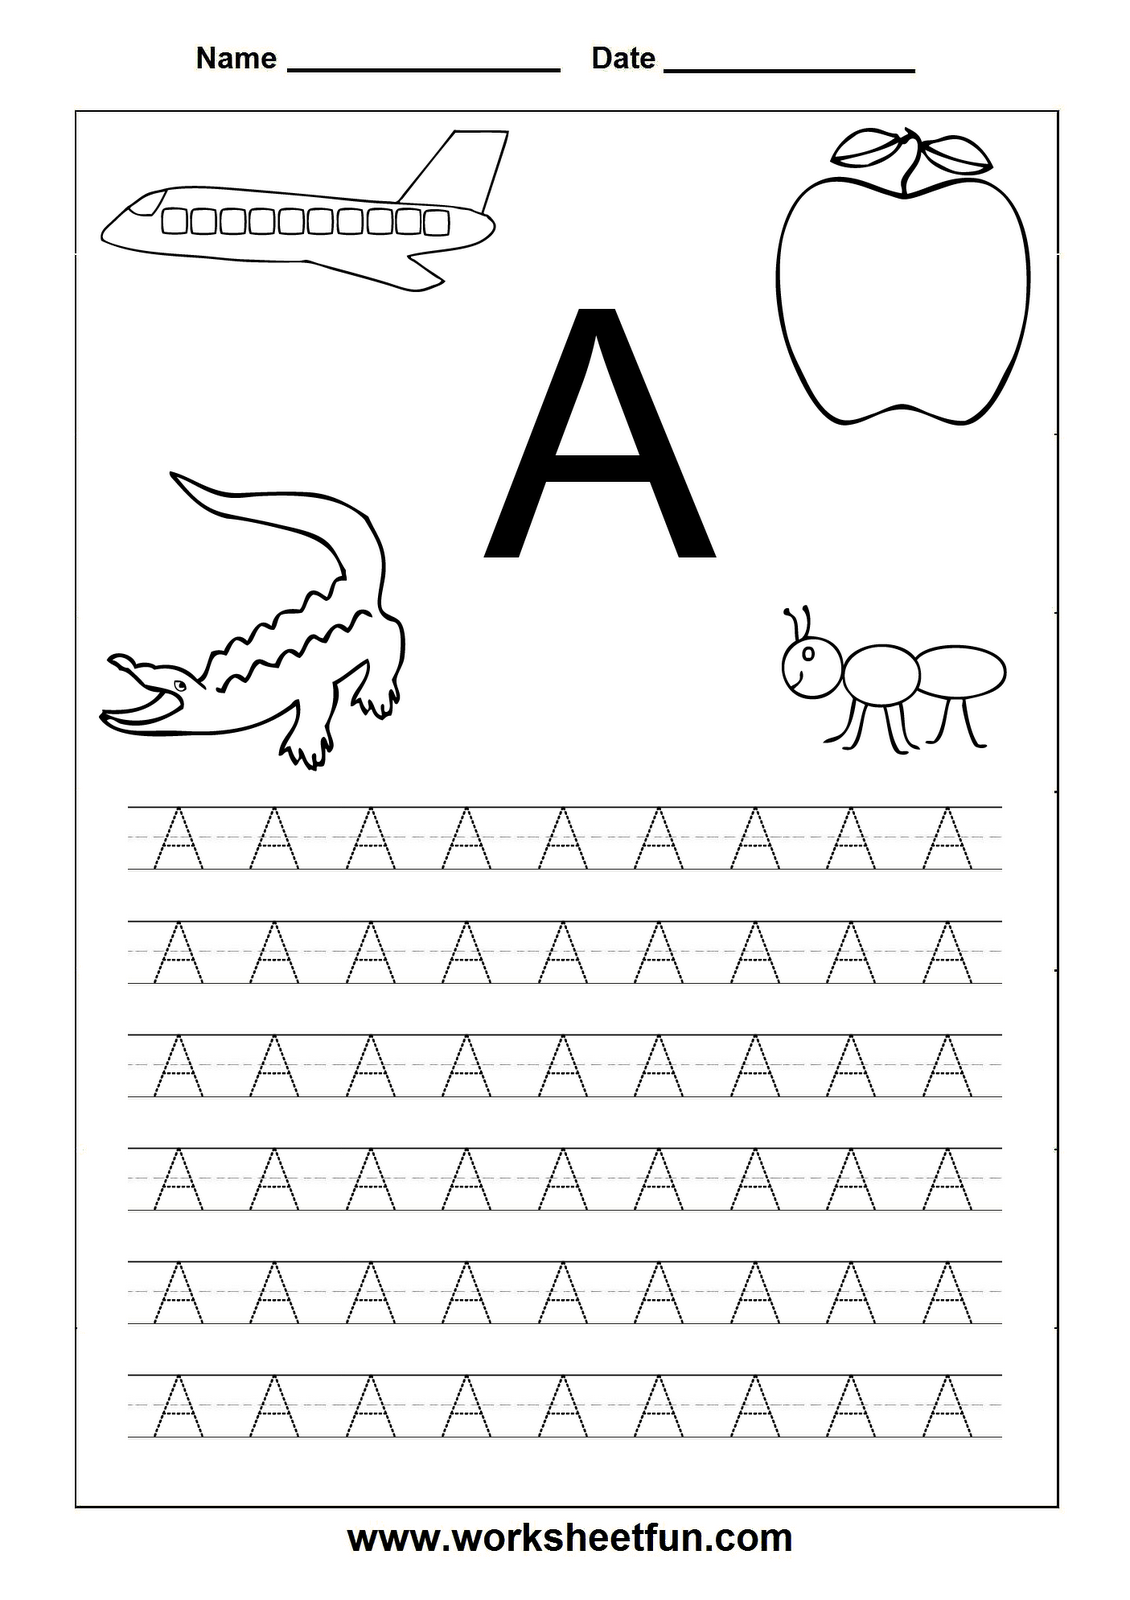 Worksheets Tracing The Alphabet Worksheets For Kindergarten a z capital letter tracing worksheets there are plenty more free printable for preschool kindergarten and grade tracing